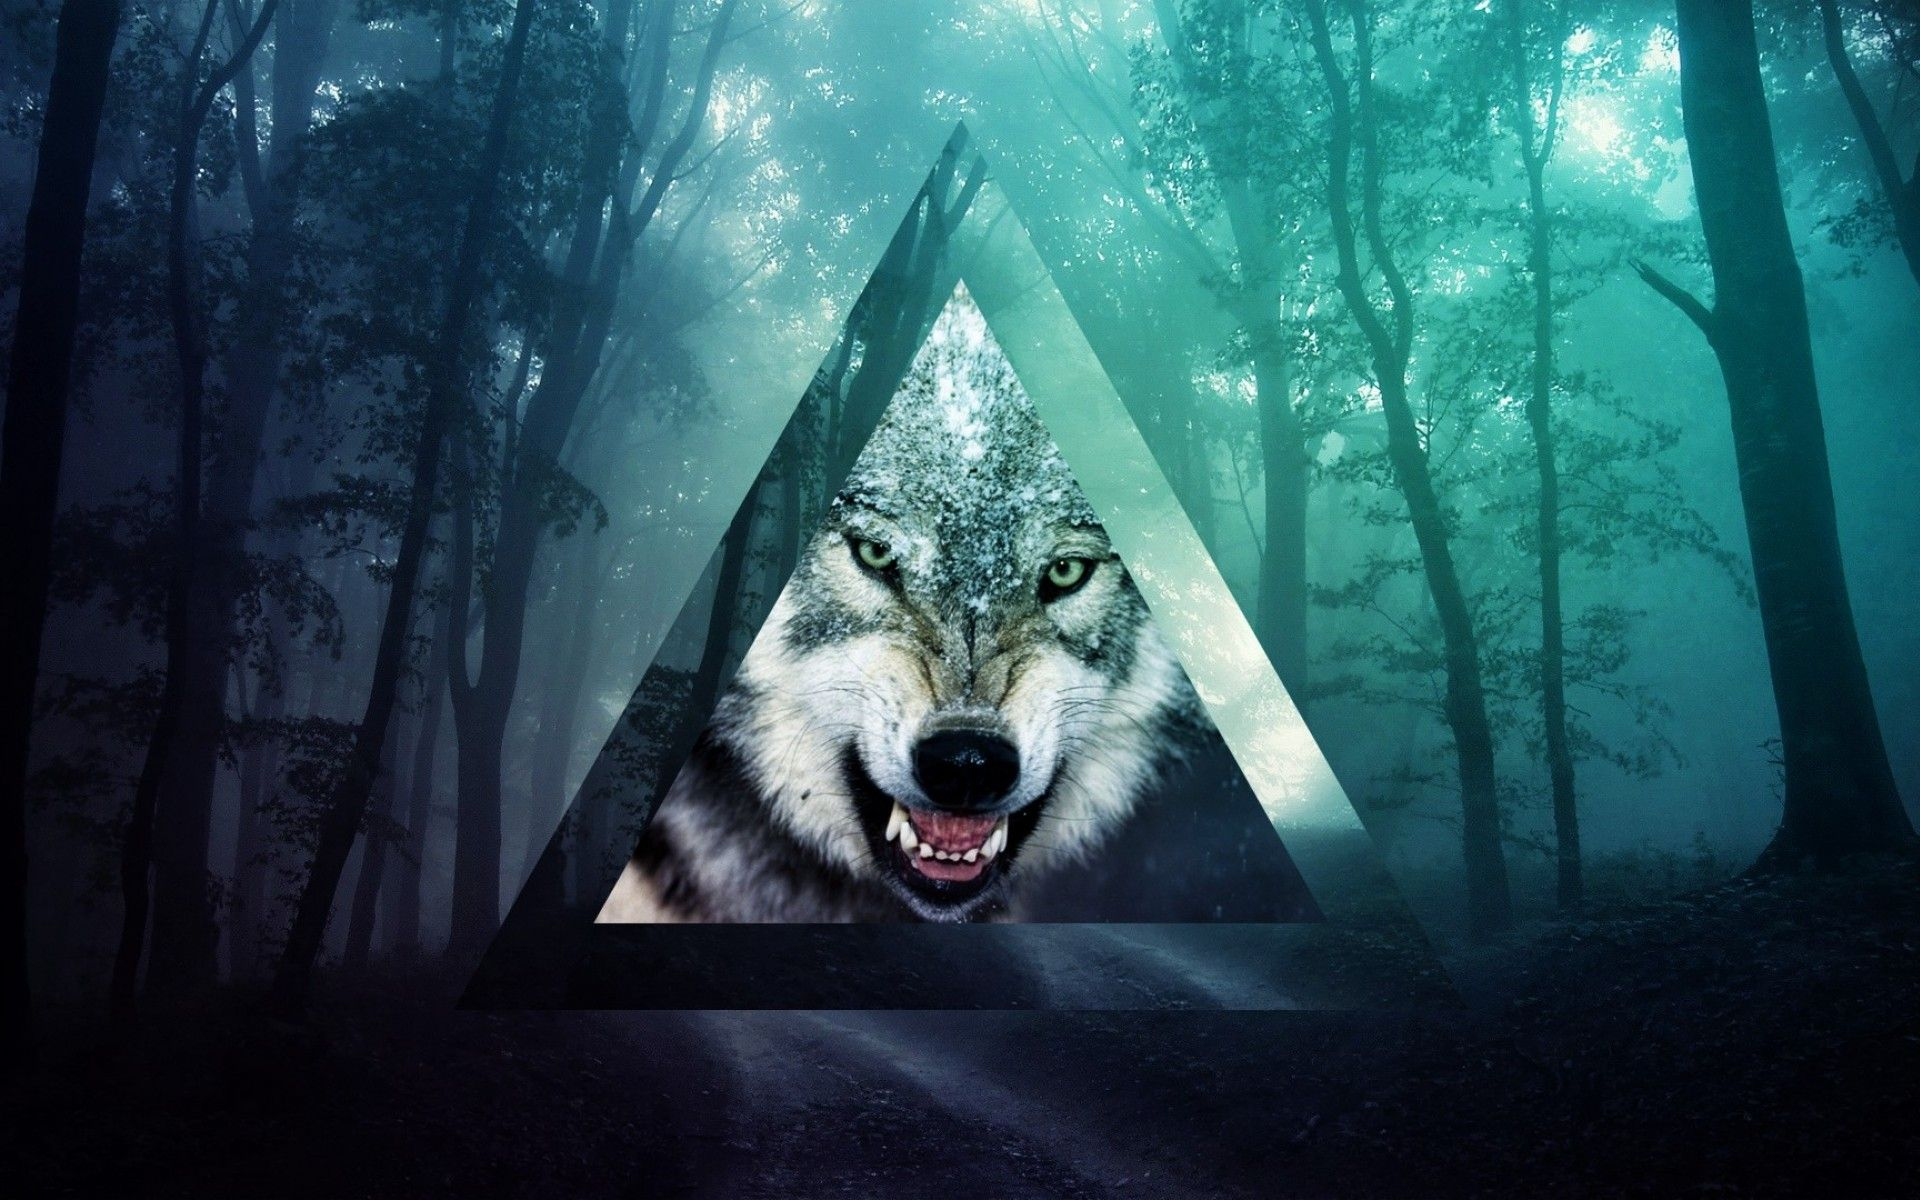 tumblr hd wolf wallpapers